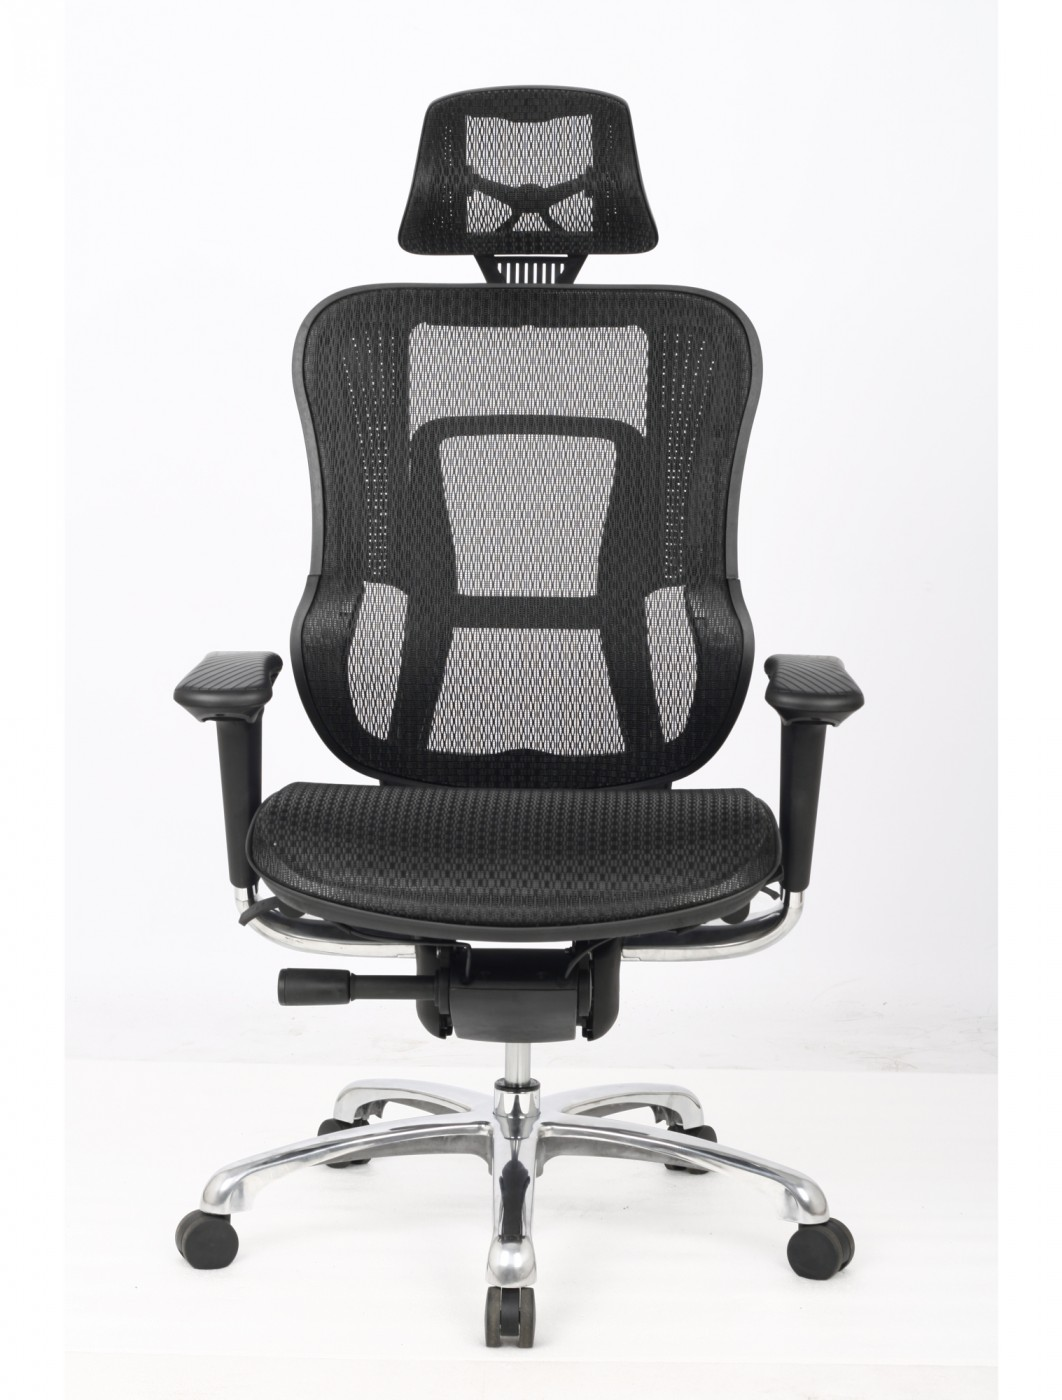 Aztec Chair Office Chairs Aztec Mesh Chair Bcm H222 Bk 121 Office